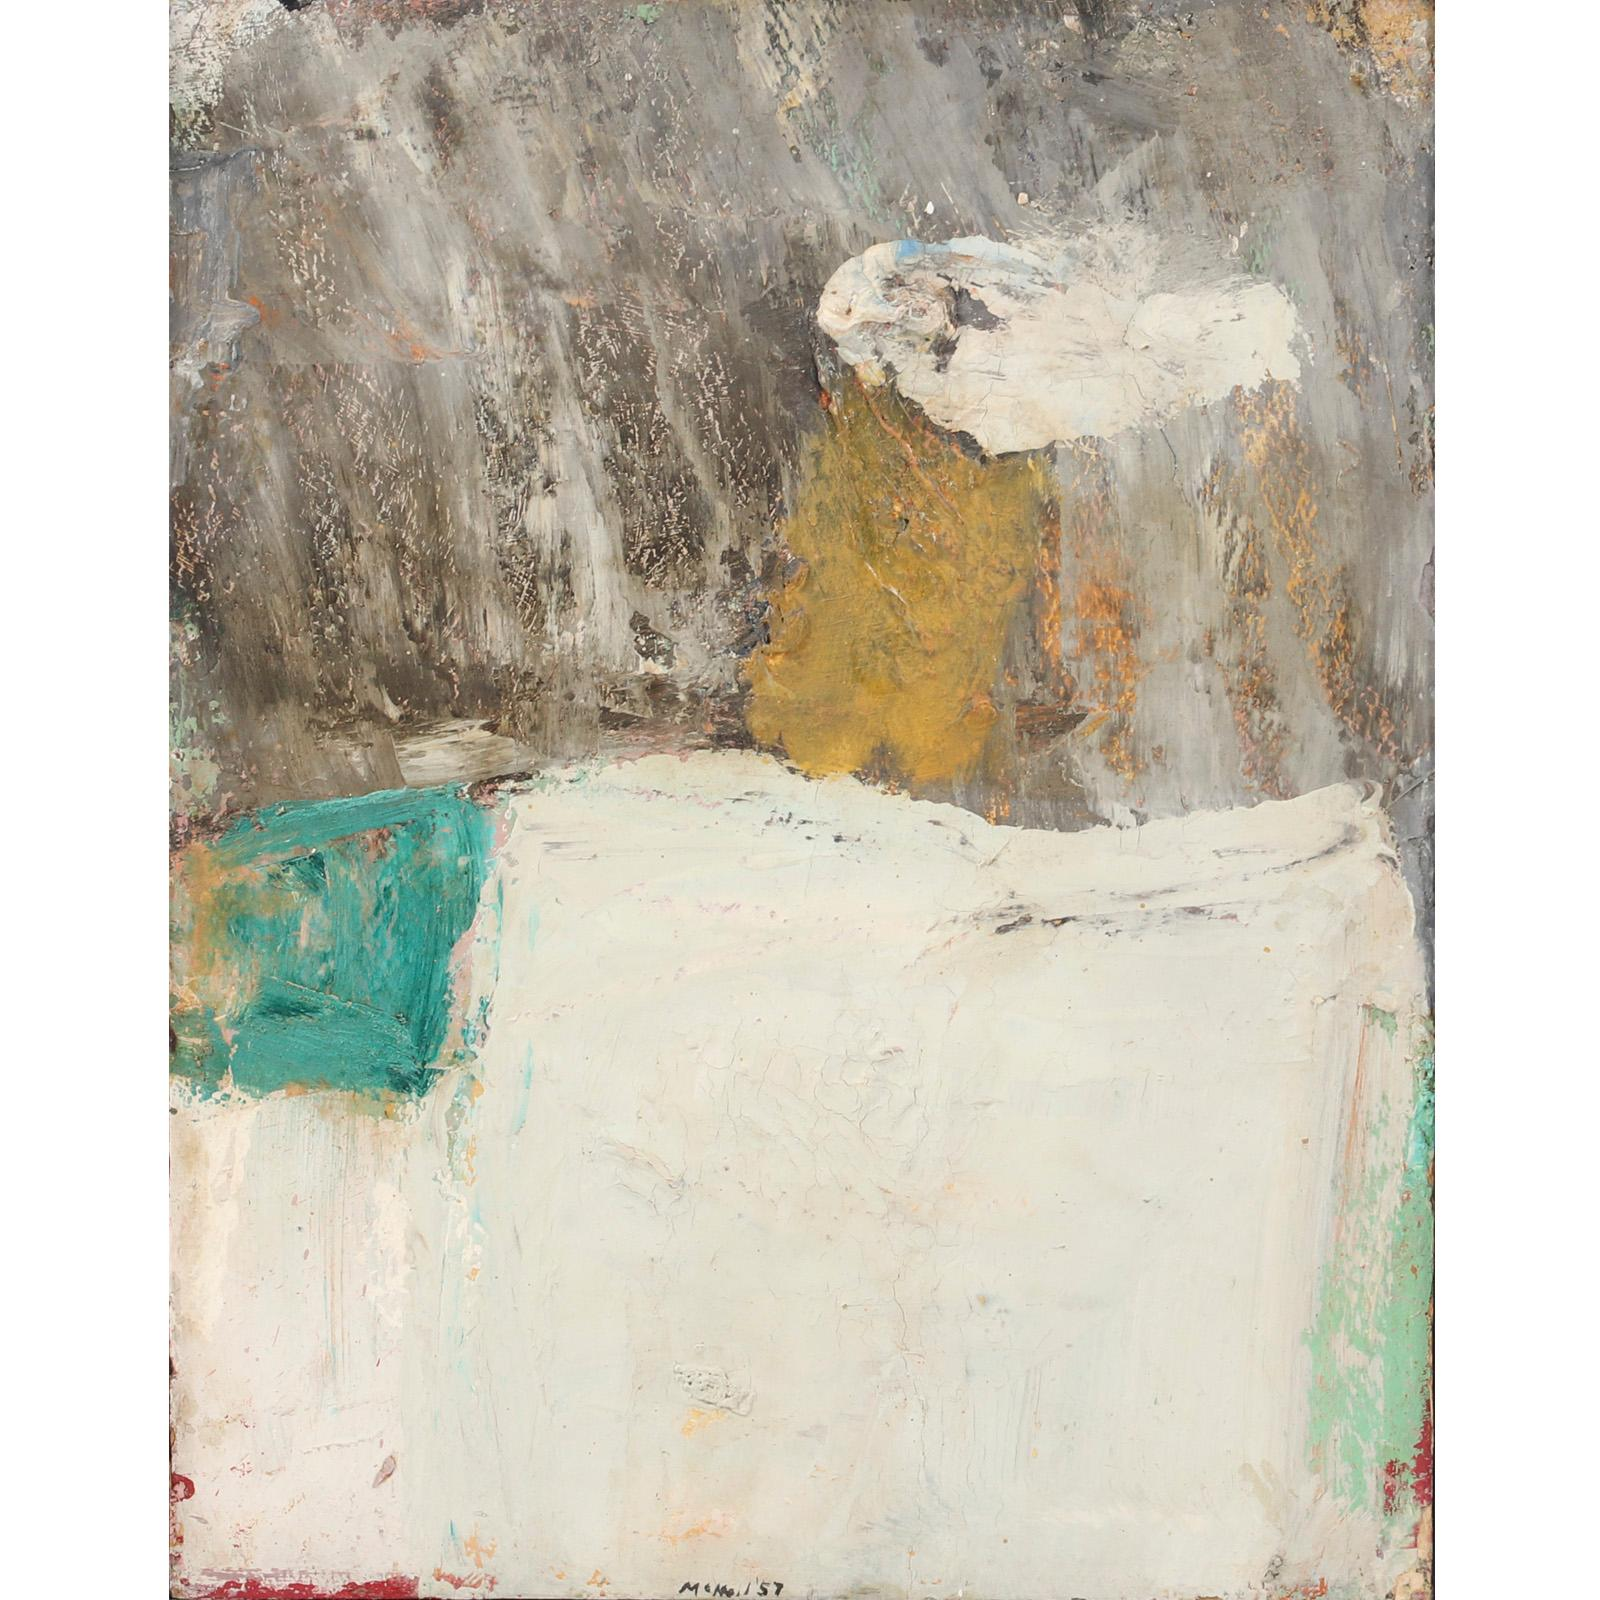 "George McNeil, (American, 1908-1995), Alcatraz, 1957, oil on panel, 14""H x 11""W (image), 11 3/4""H x 15""W (frame)."